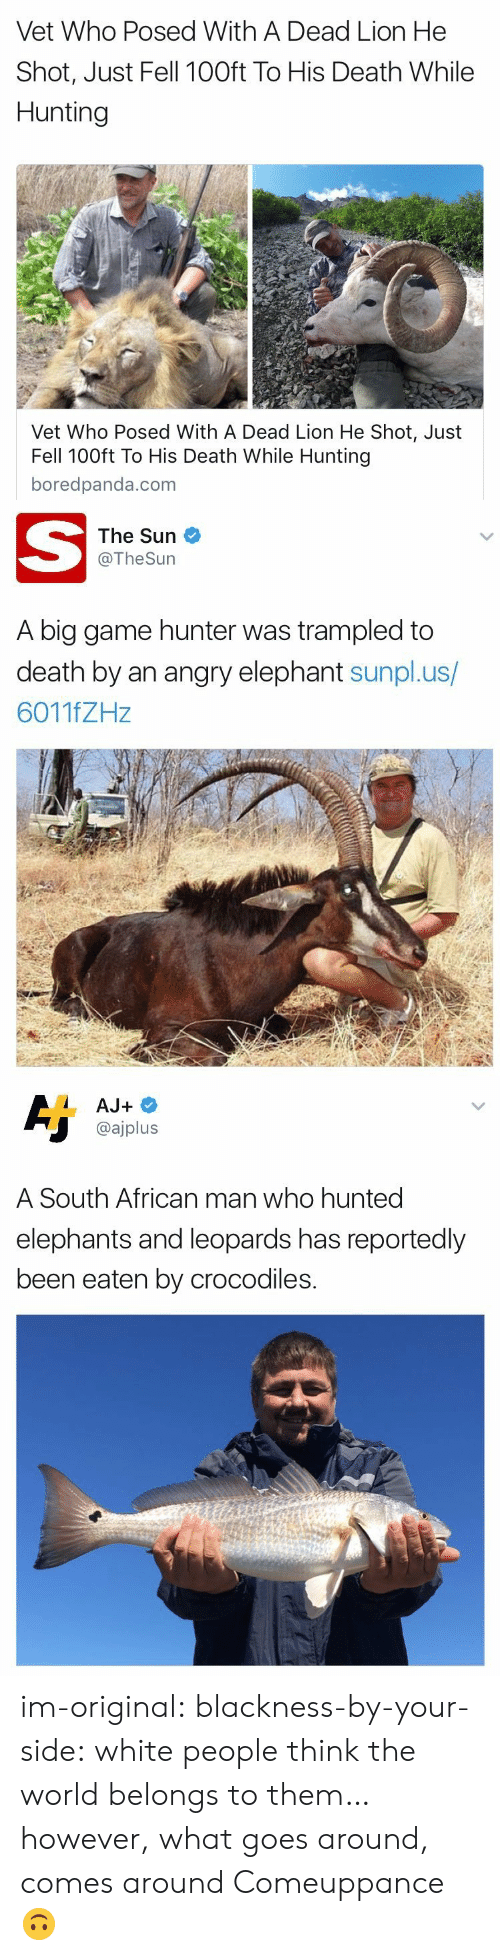 Tumblr, White People, and Hunting: Vet Who Posed With A Dead Lion He  Shot, Just Fell 100ft To His Death While  Hunting  Vet Who Posed With A Dead Lion He Shot, Just  Fell 100ft To His Death While Hunting  boredpanda.com   The Sun  @TheSurn  A big game hunter was trampled to  death by an angry elephant sunpl.us/  6011fZHz   @ajplus  A South African man who hunted  elephants and leoparas has reportedly  been eaten by crocodiles. im-original: blackness-by-your-side:  white people think the world belongs to them… however, what goes around, comes around  Comeuppance 🙃